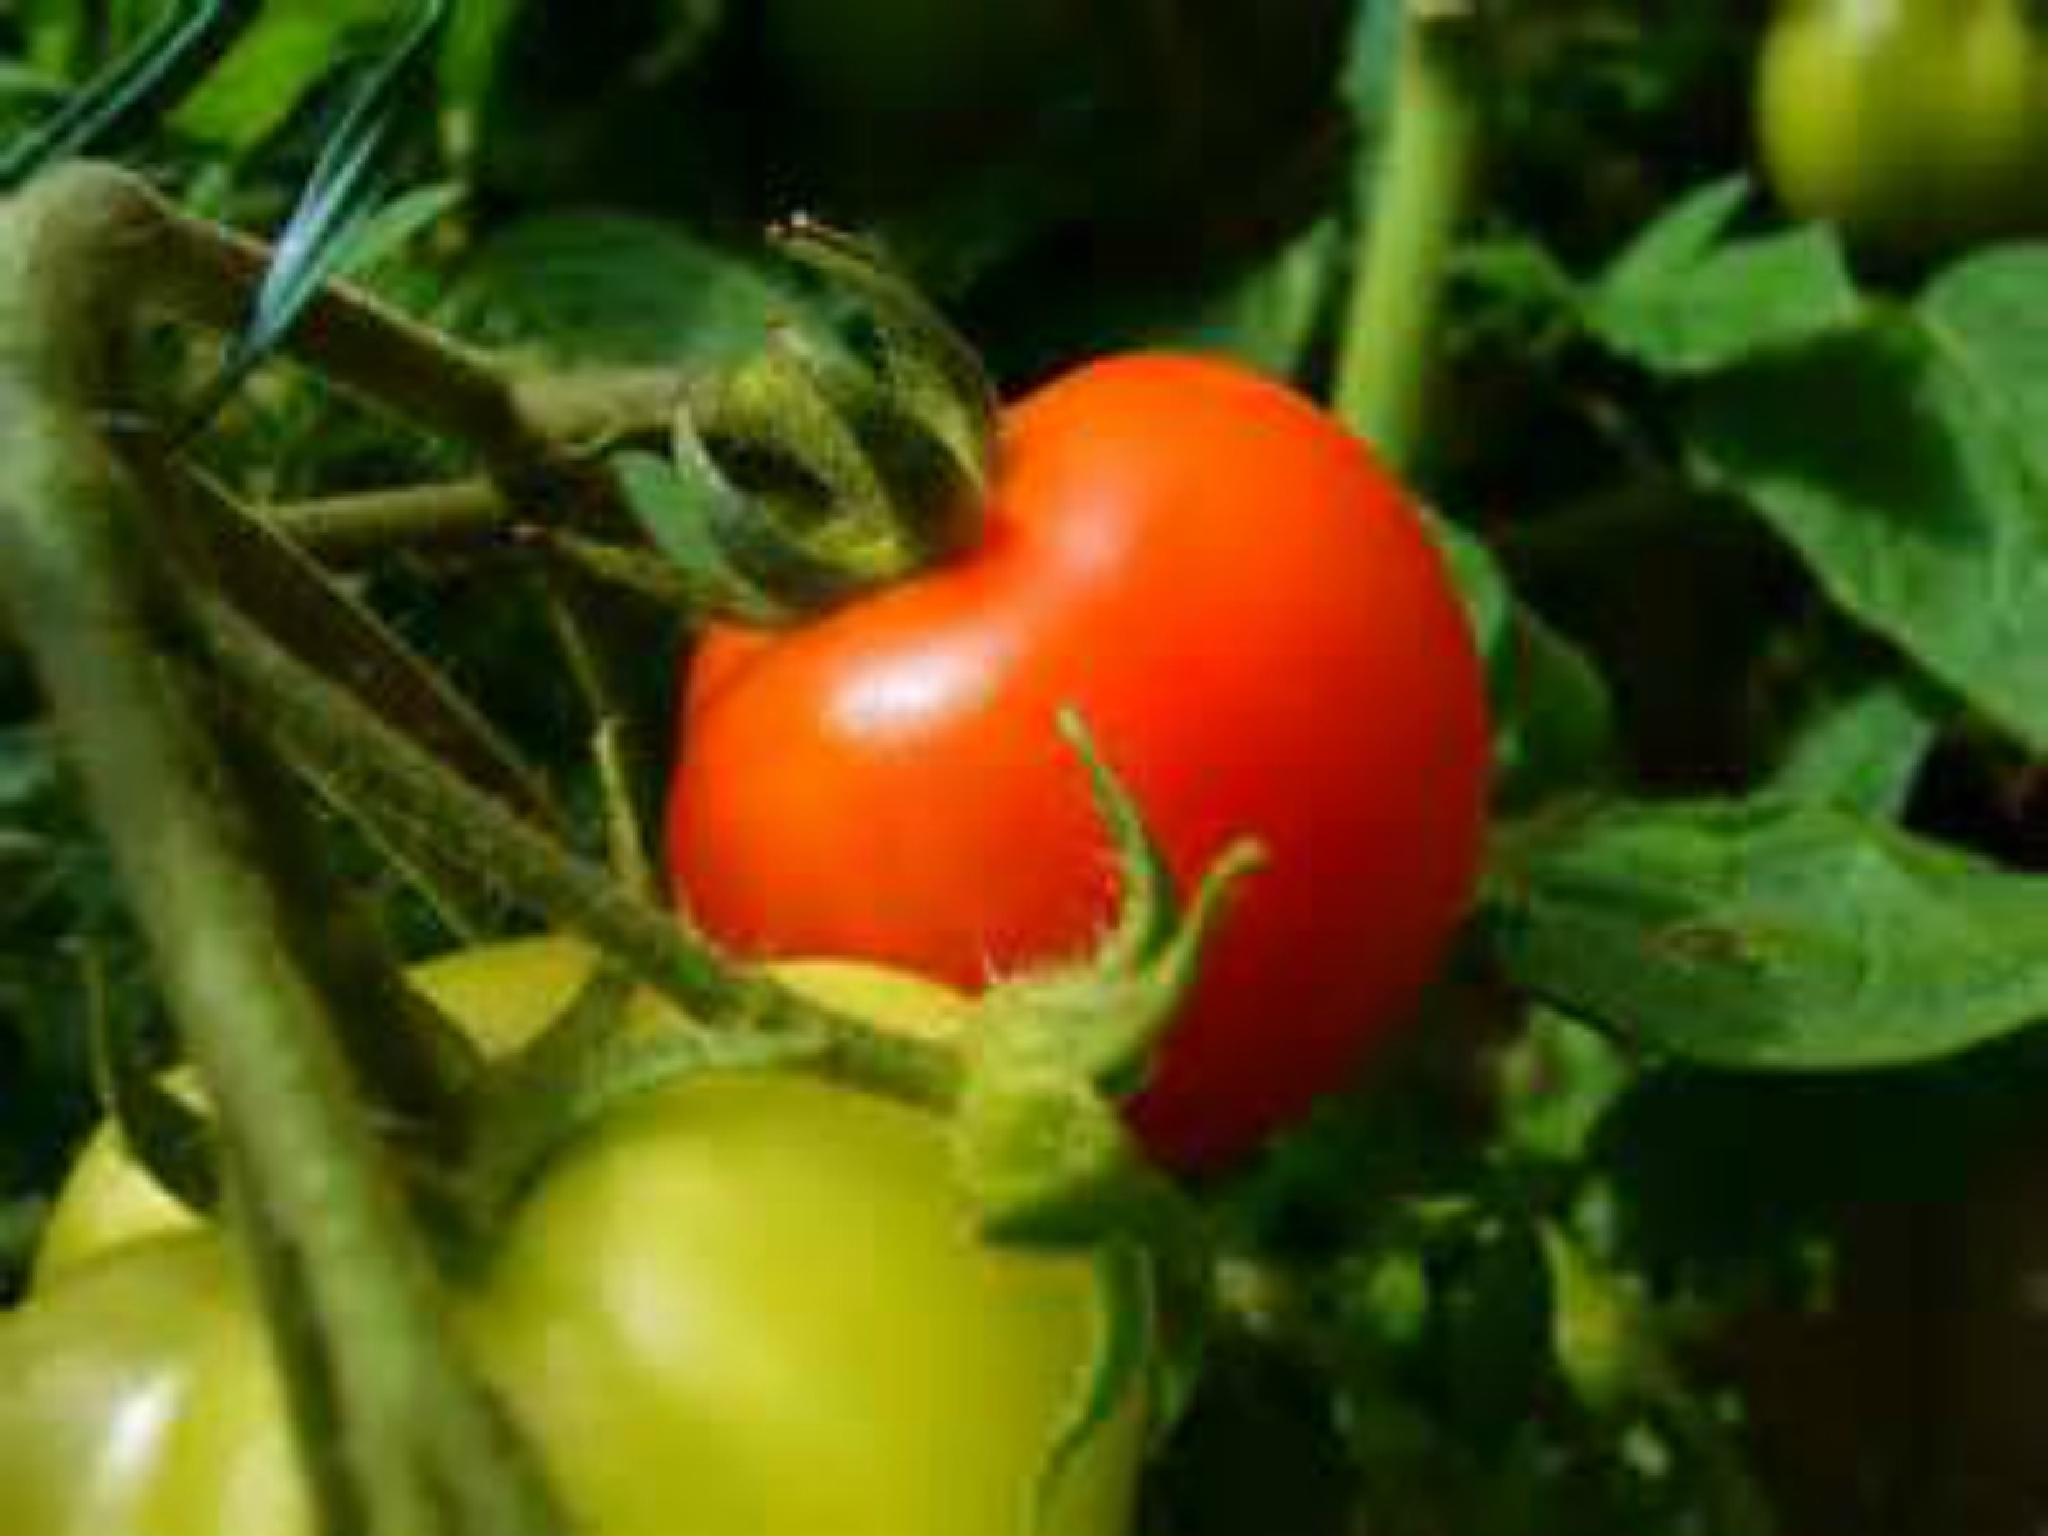 Baby tomato by lindandarrell